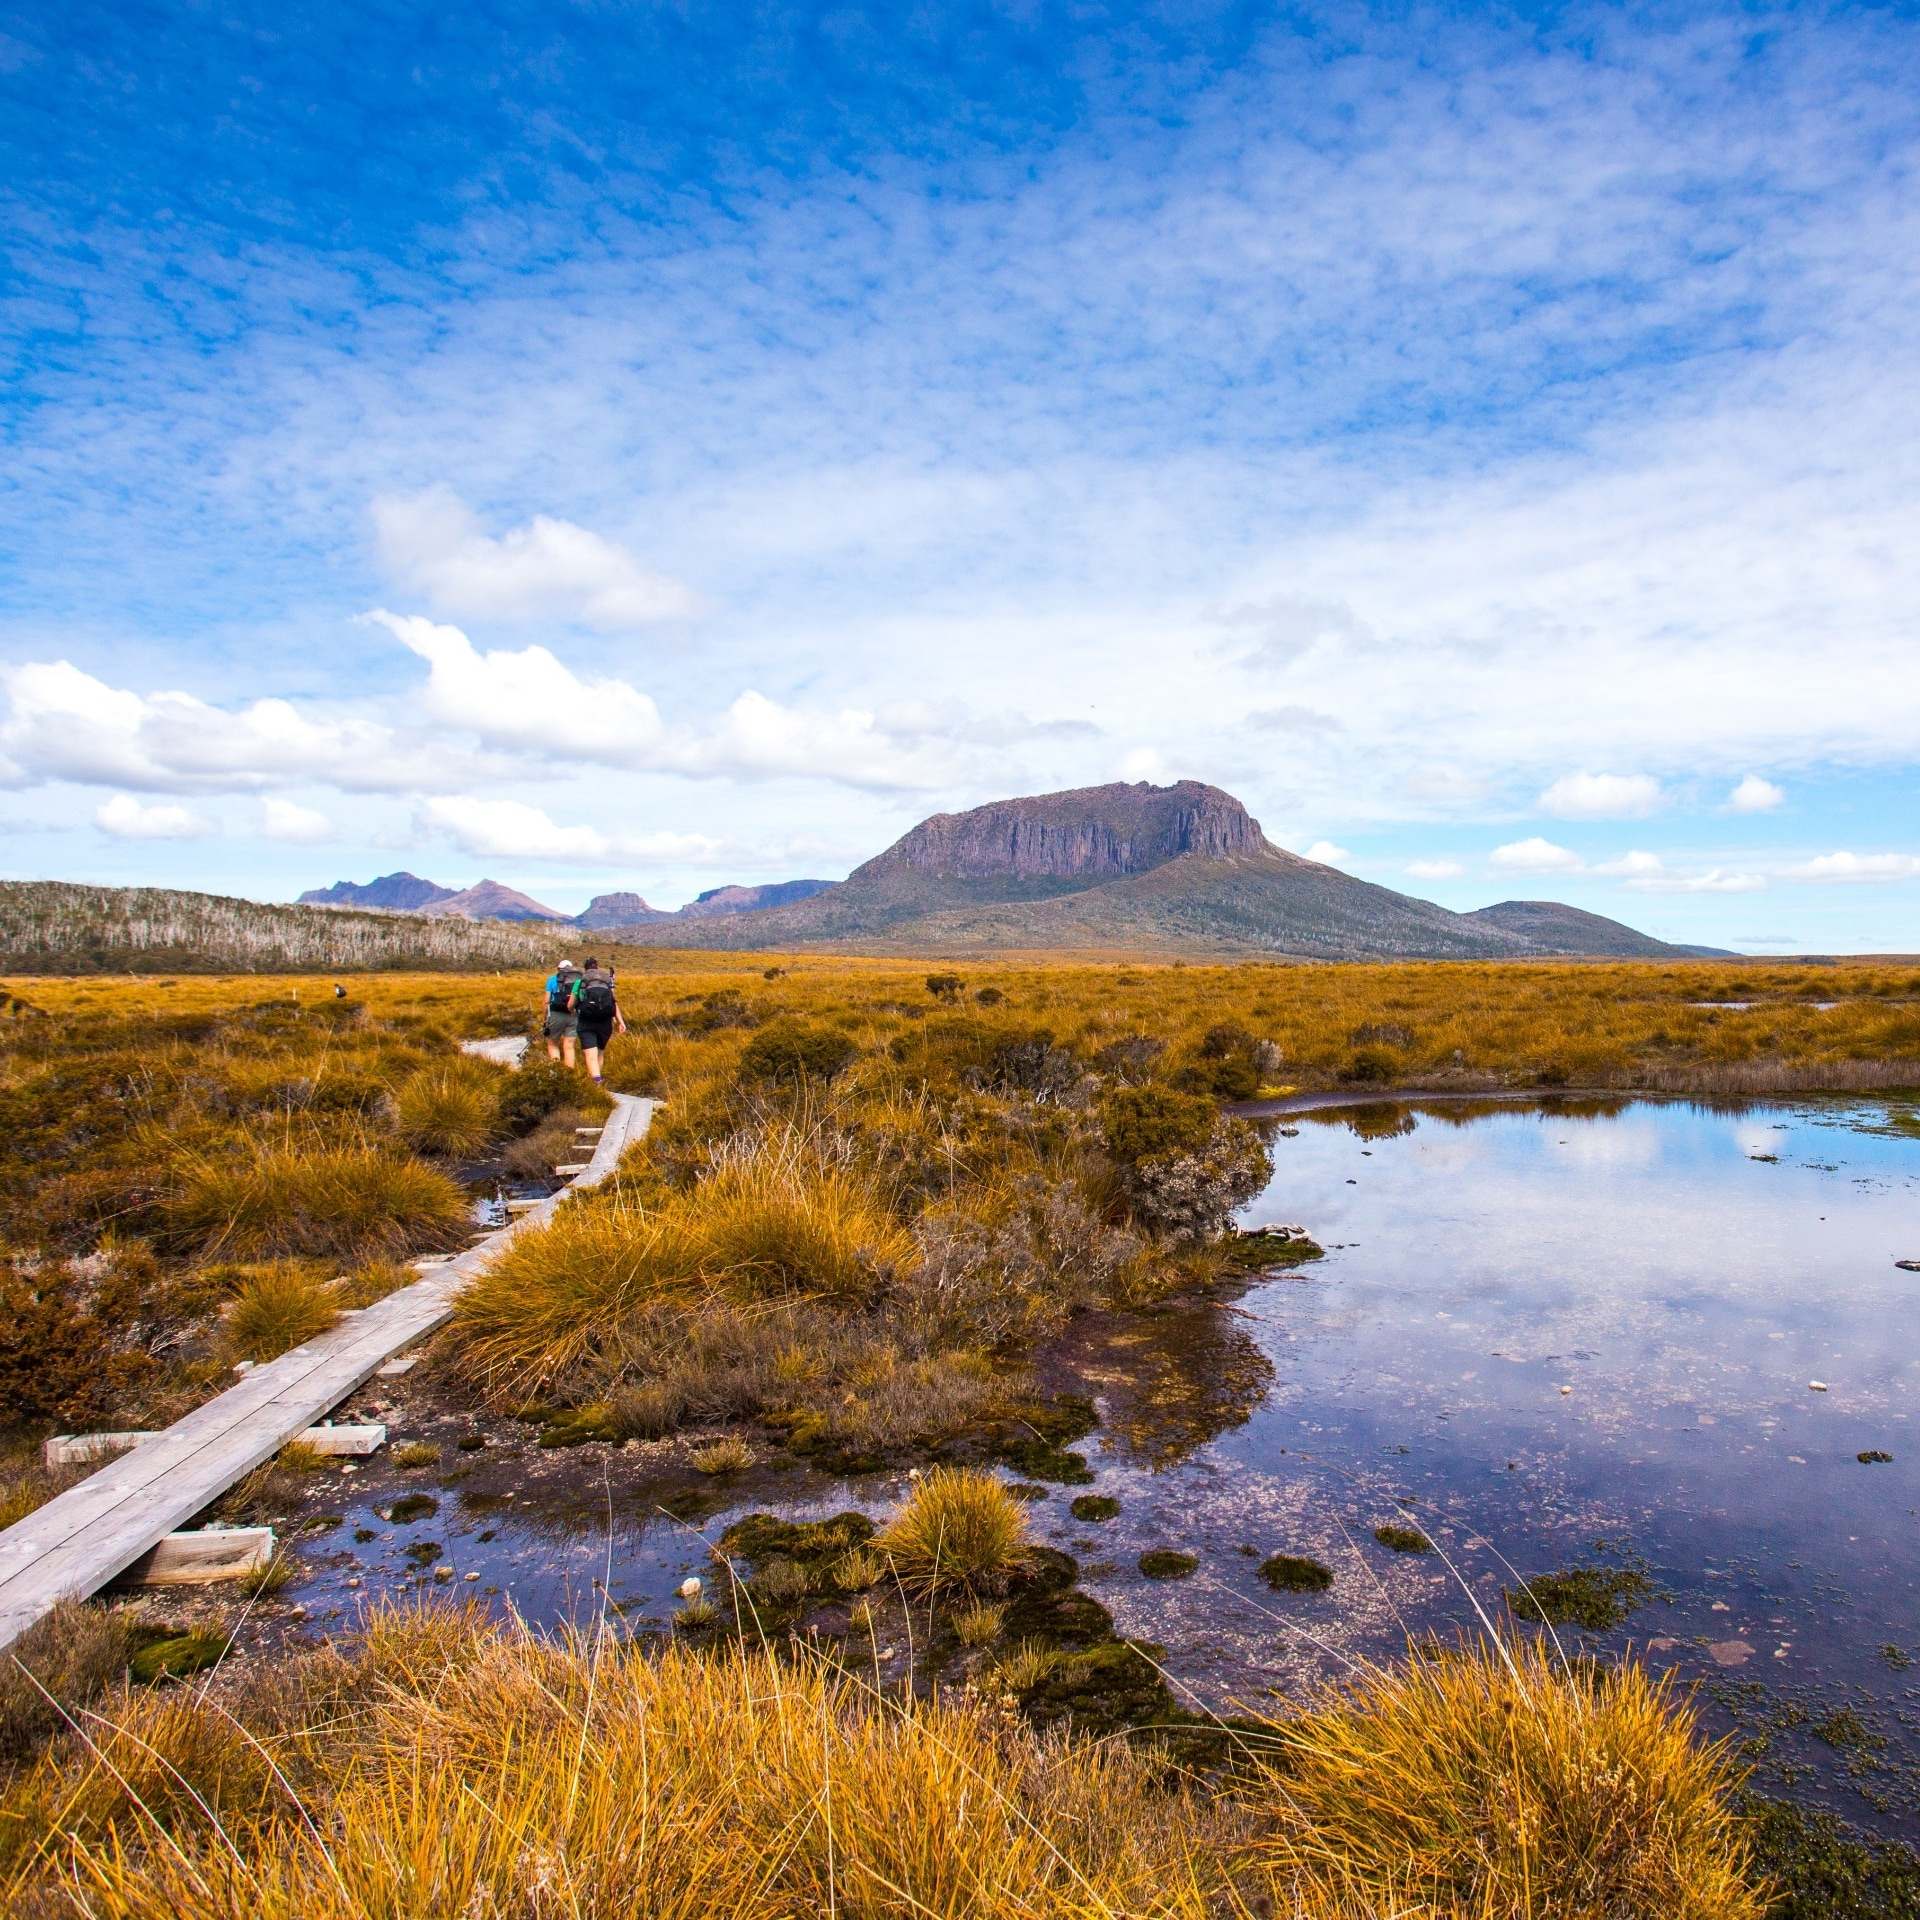 Cradle Mountain Huts Overland Track Walk, Mount Pelion West, Cradle Mountain-Lake St Clair National Park, Tasmanien © Tasmanian Walking Company/Great Walks of Australia